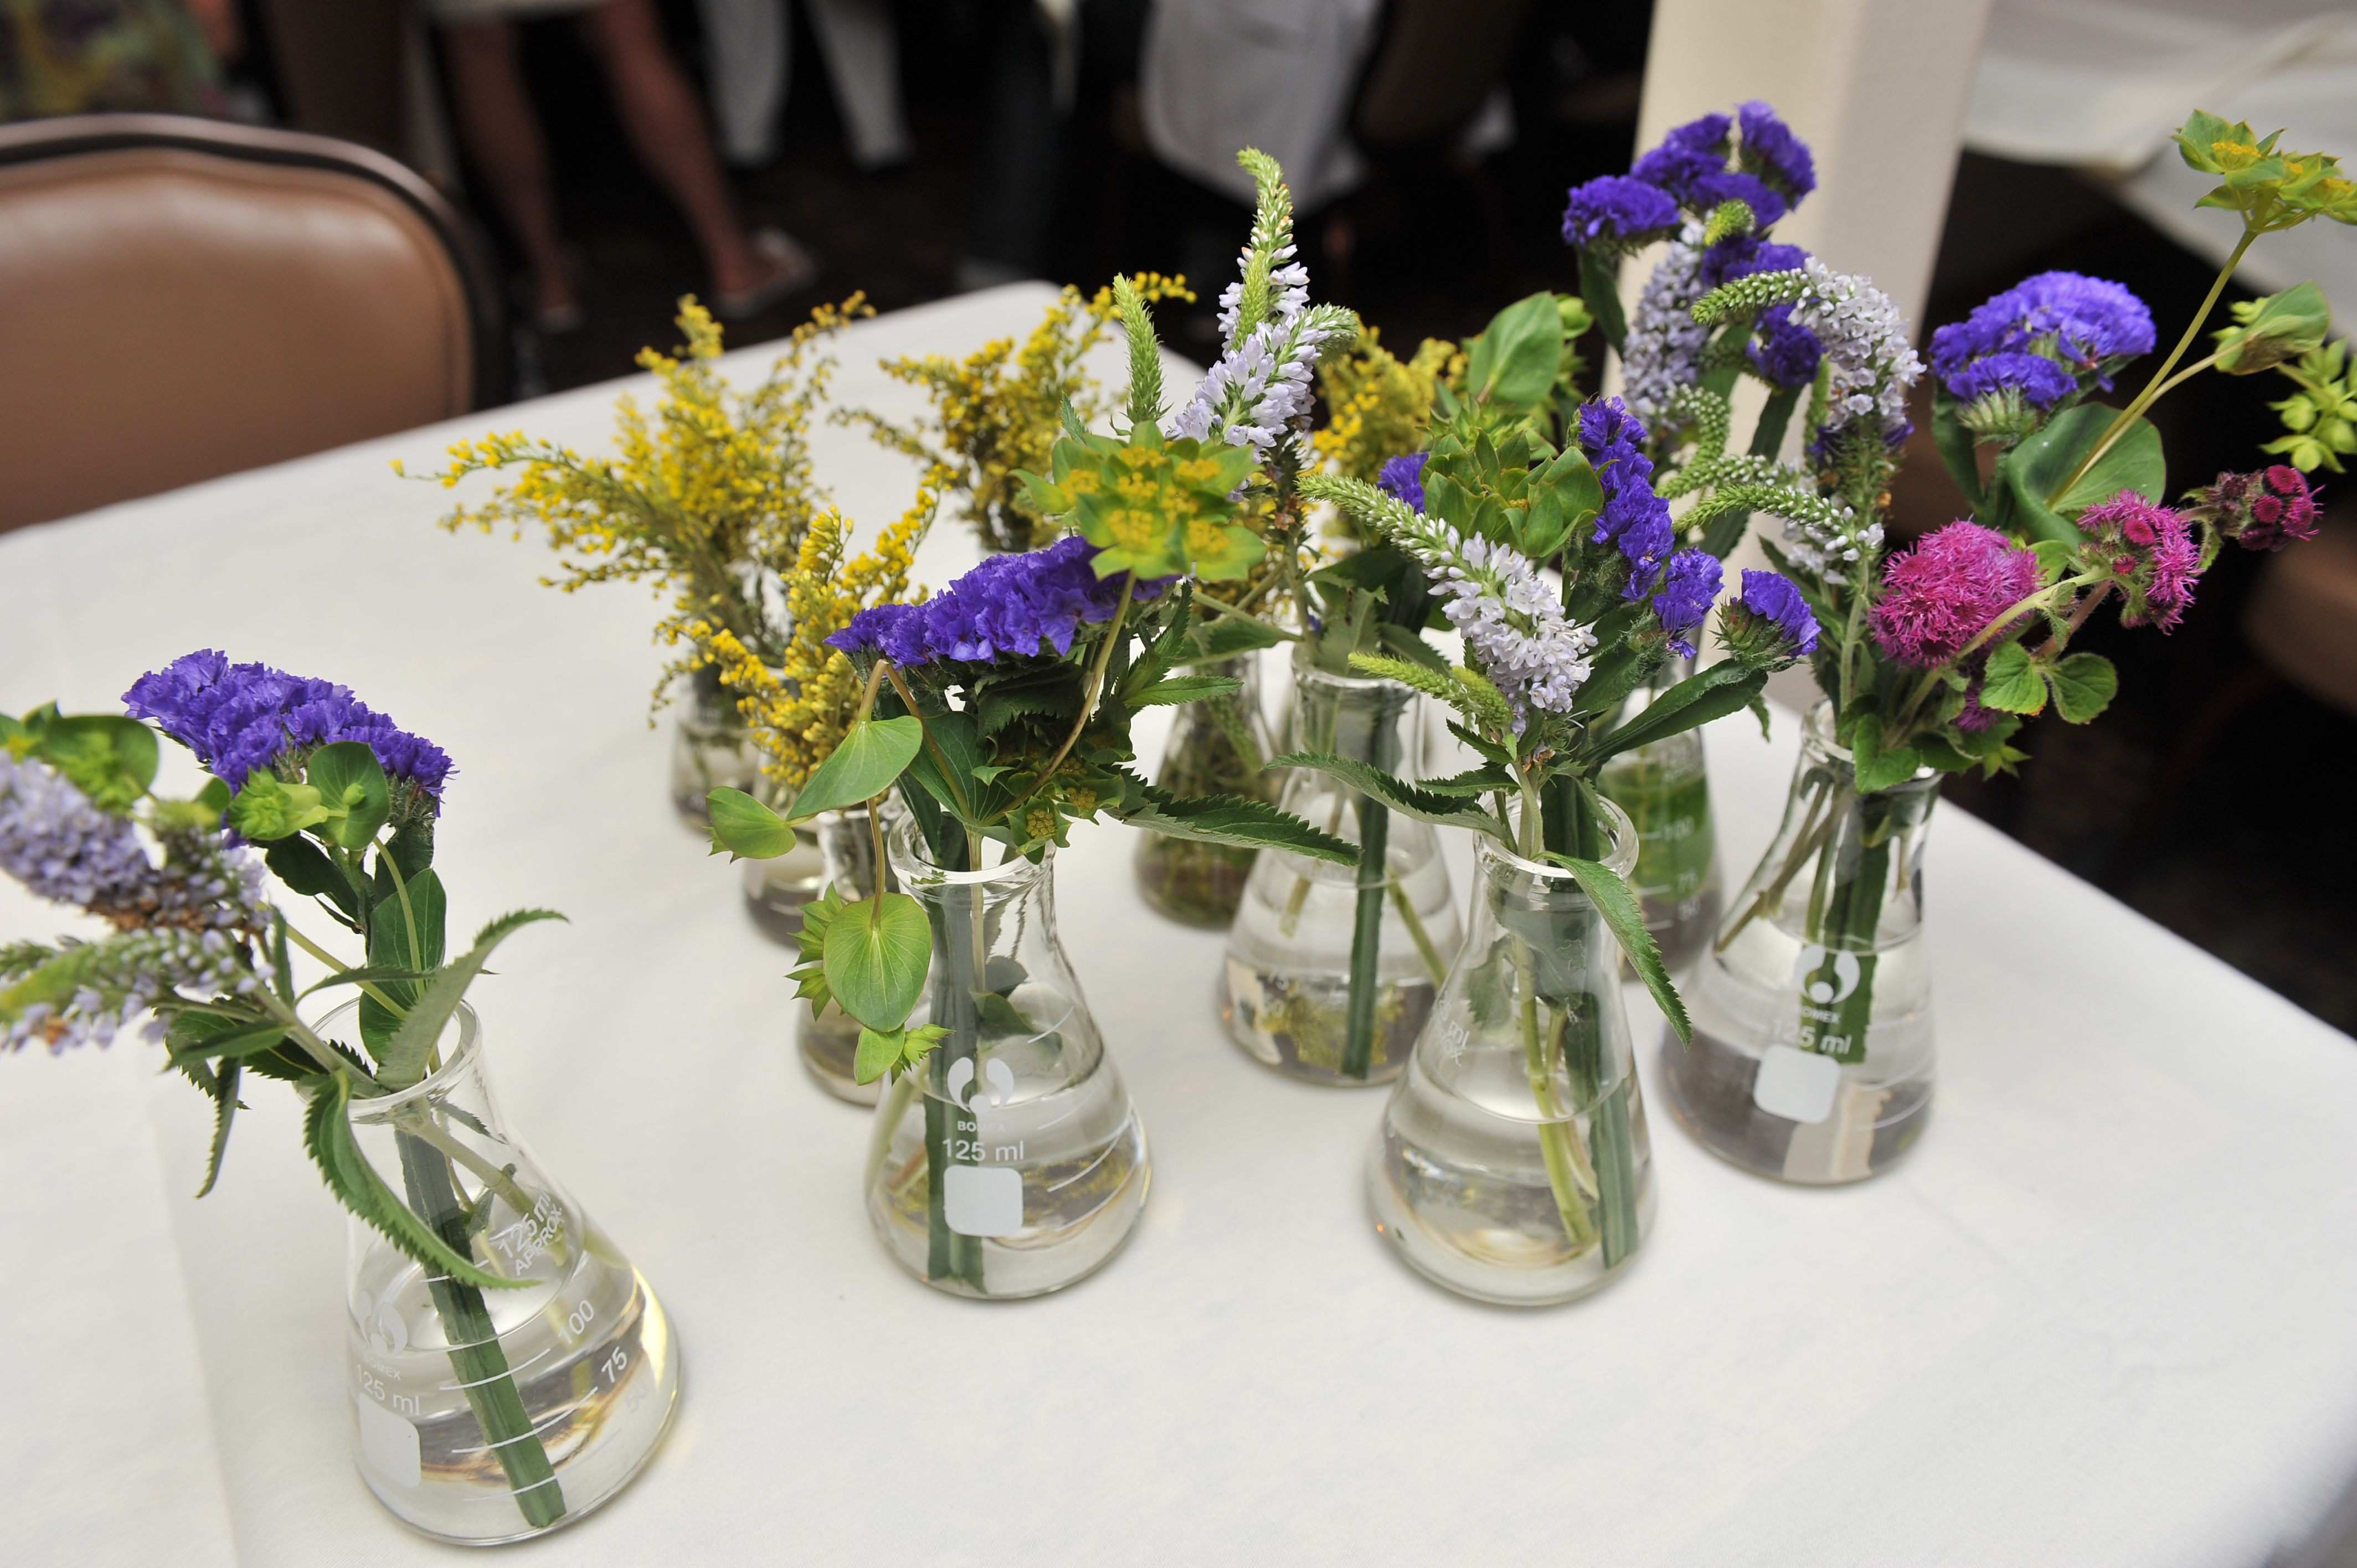 Flowers in erlenmeyer flasks as centerpieces wedding flowers in erlenmeyer flasks as centerpieces reviewsmspy